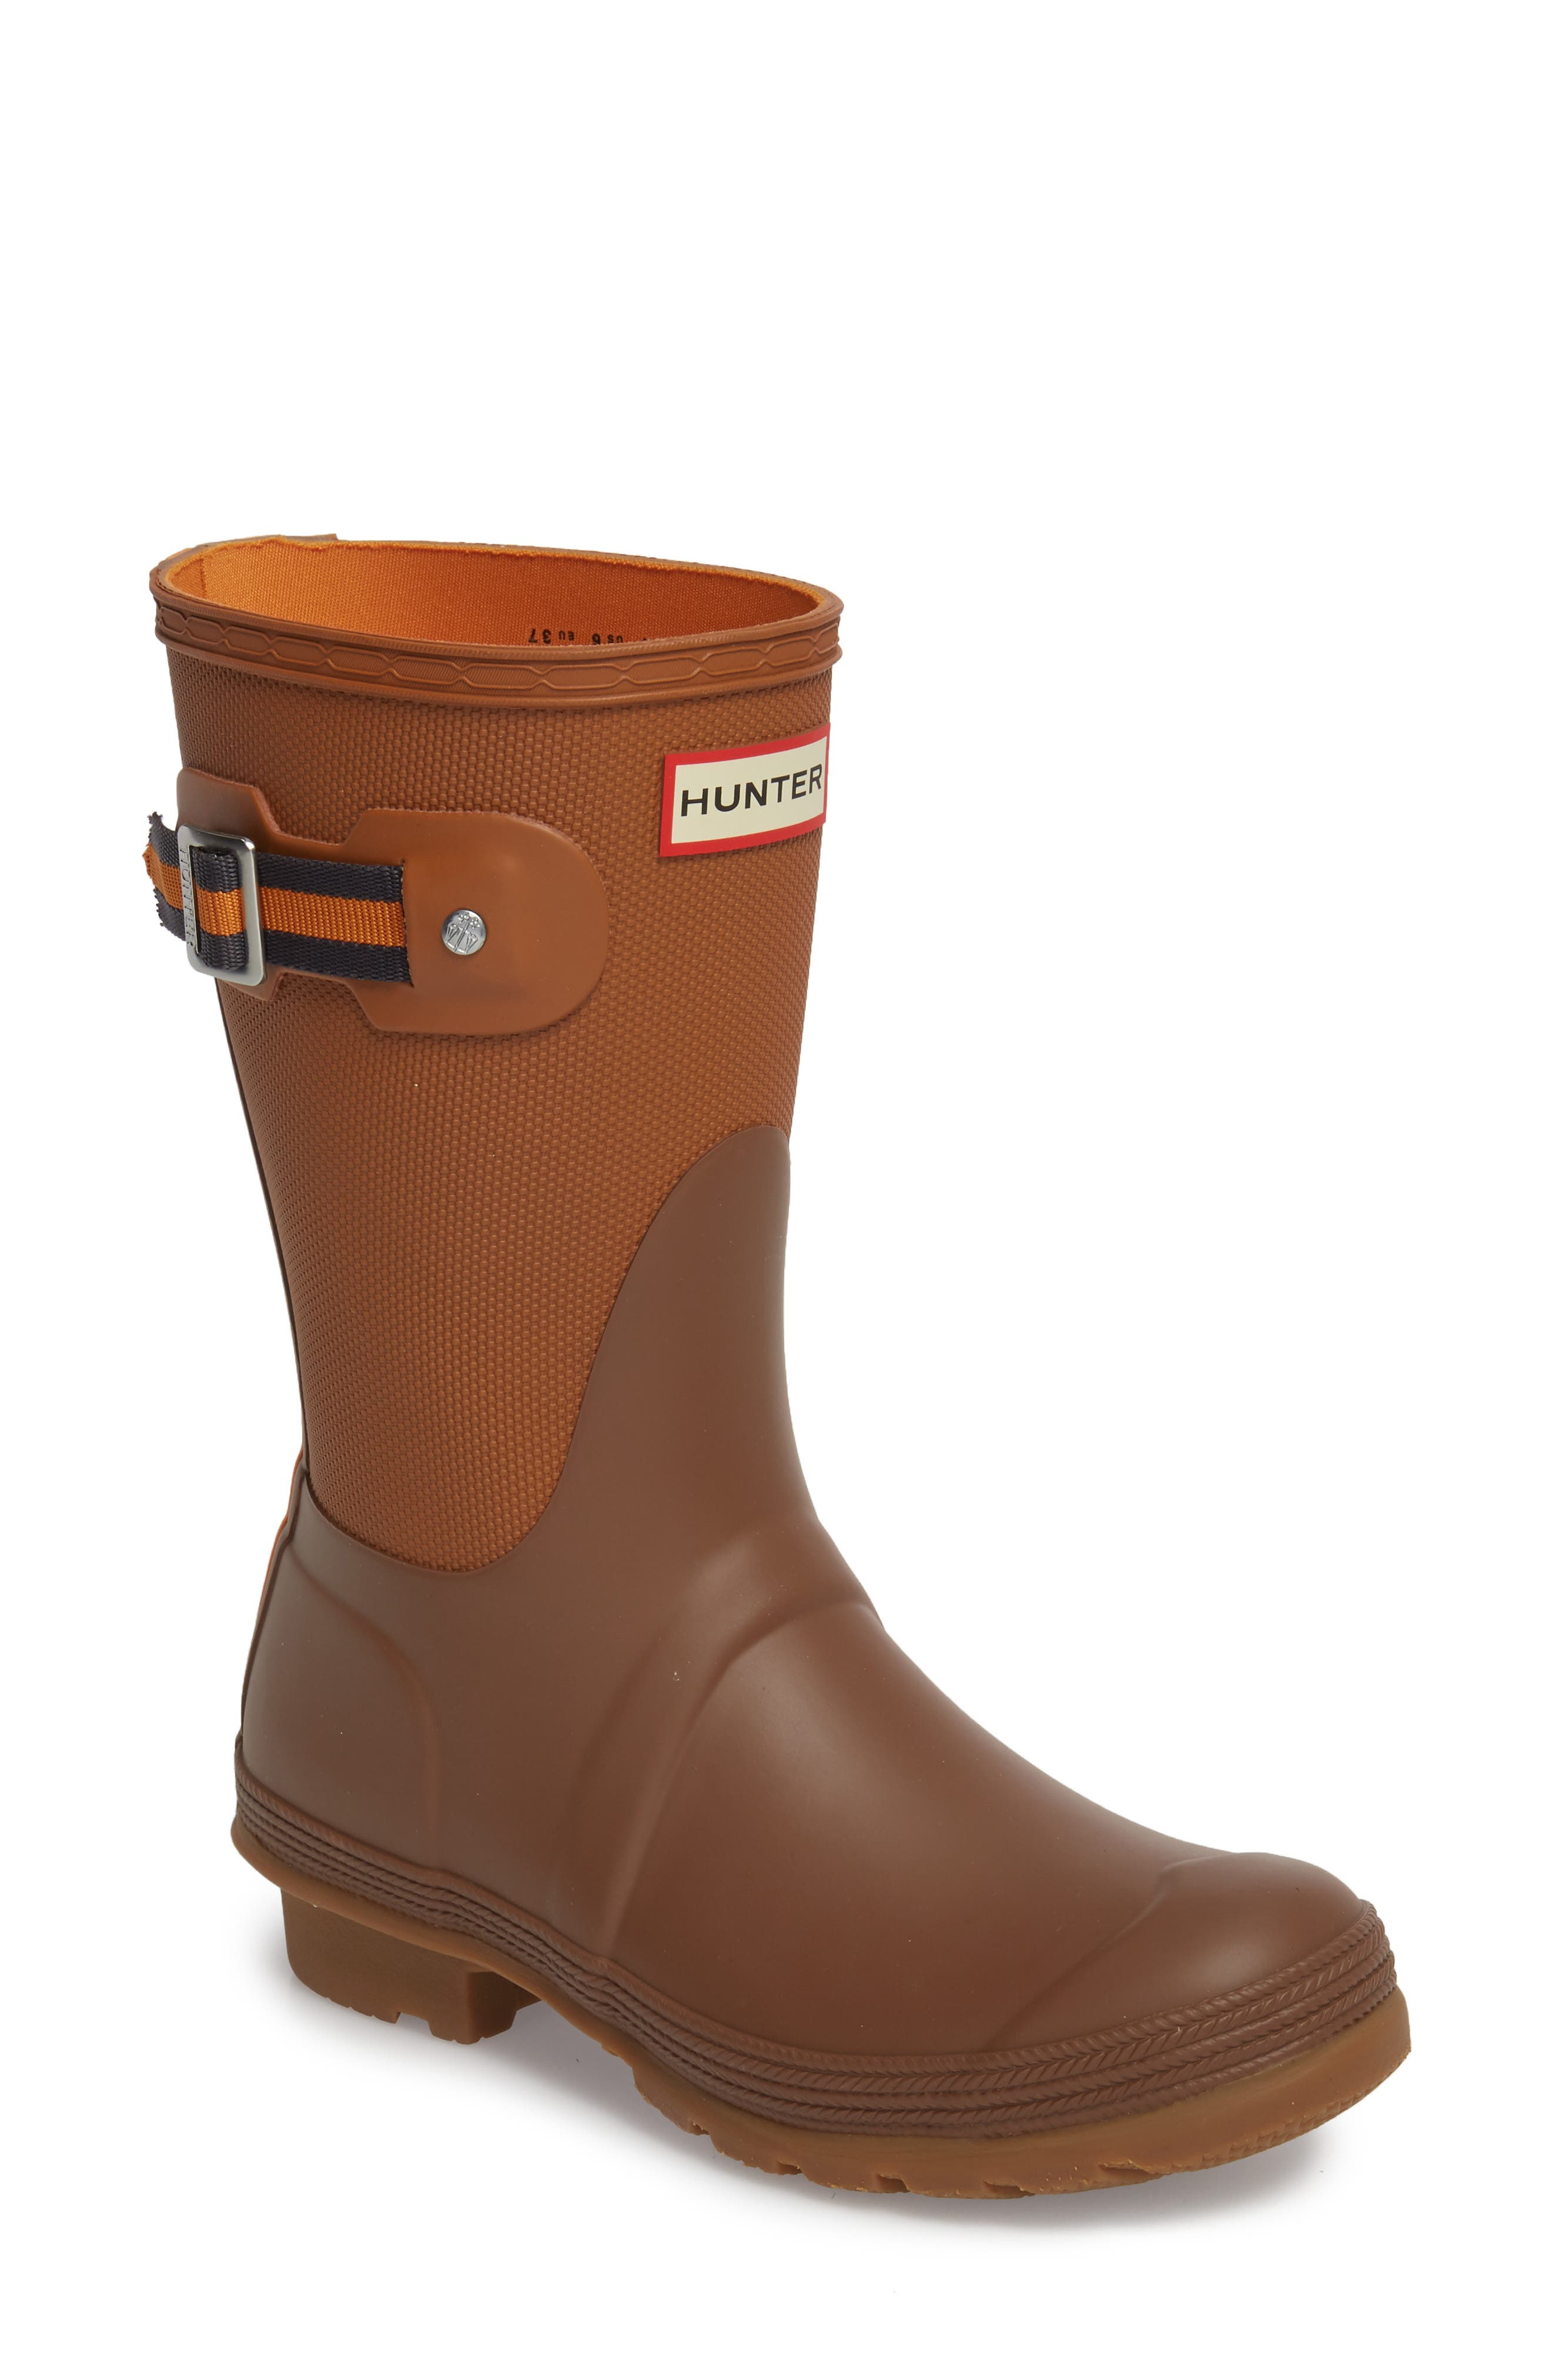 Alternate Image 1 Selected - Hunter Original Sissinghurst Short Rain Boot (Women)